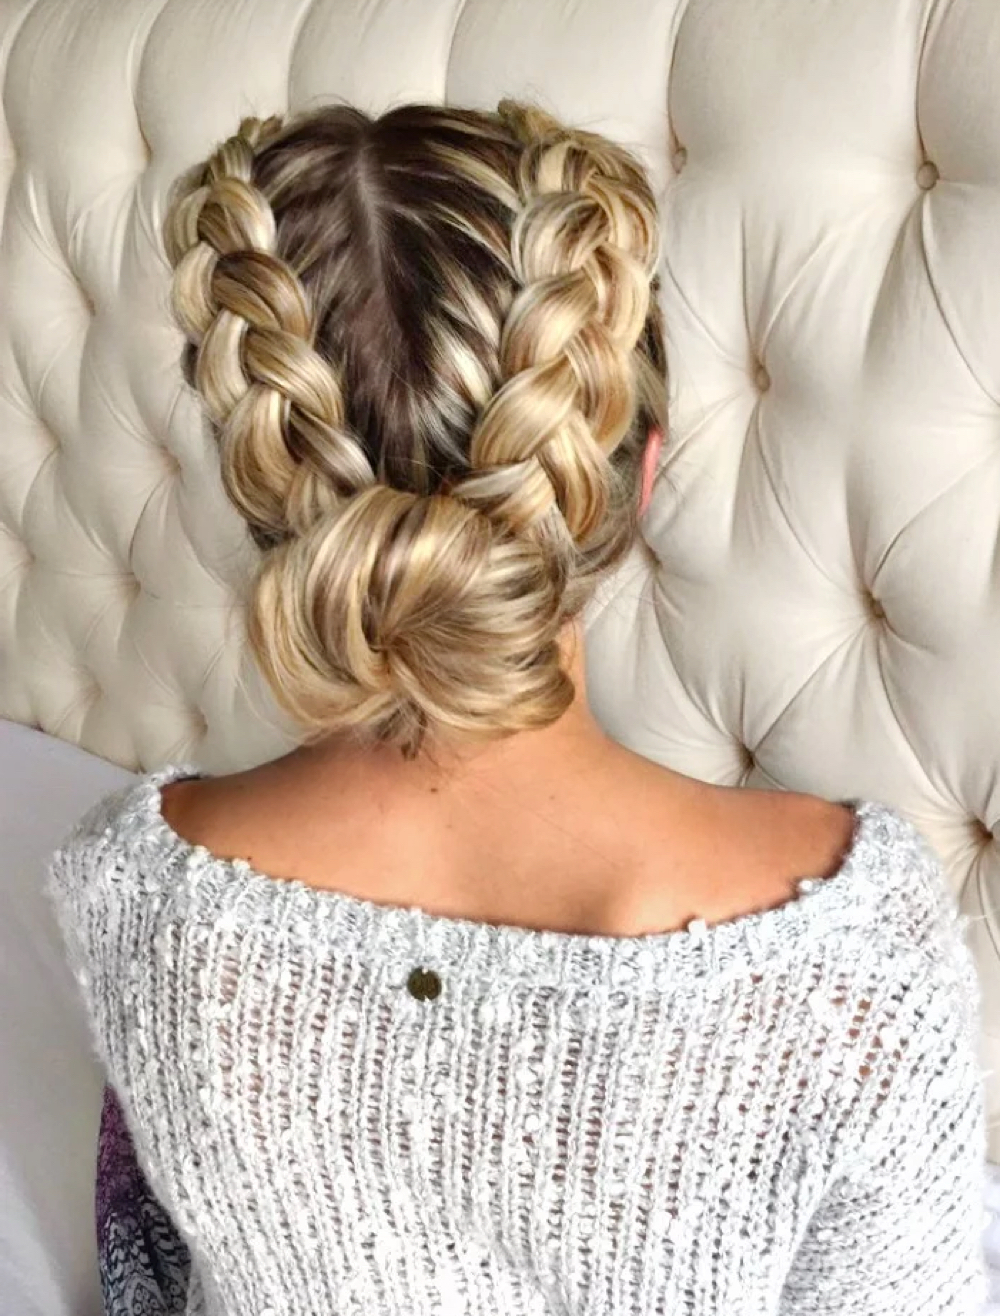 Latest Classic Prom Updos With Thick Accent Braid Inside 29 Gorgeous Braided Updo Ideas For (View 14 of 20)